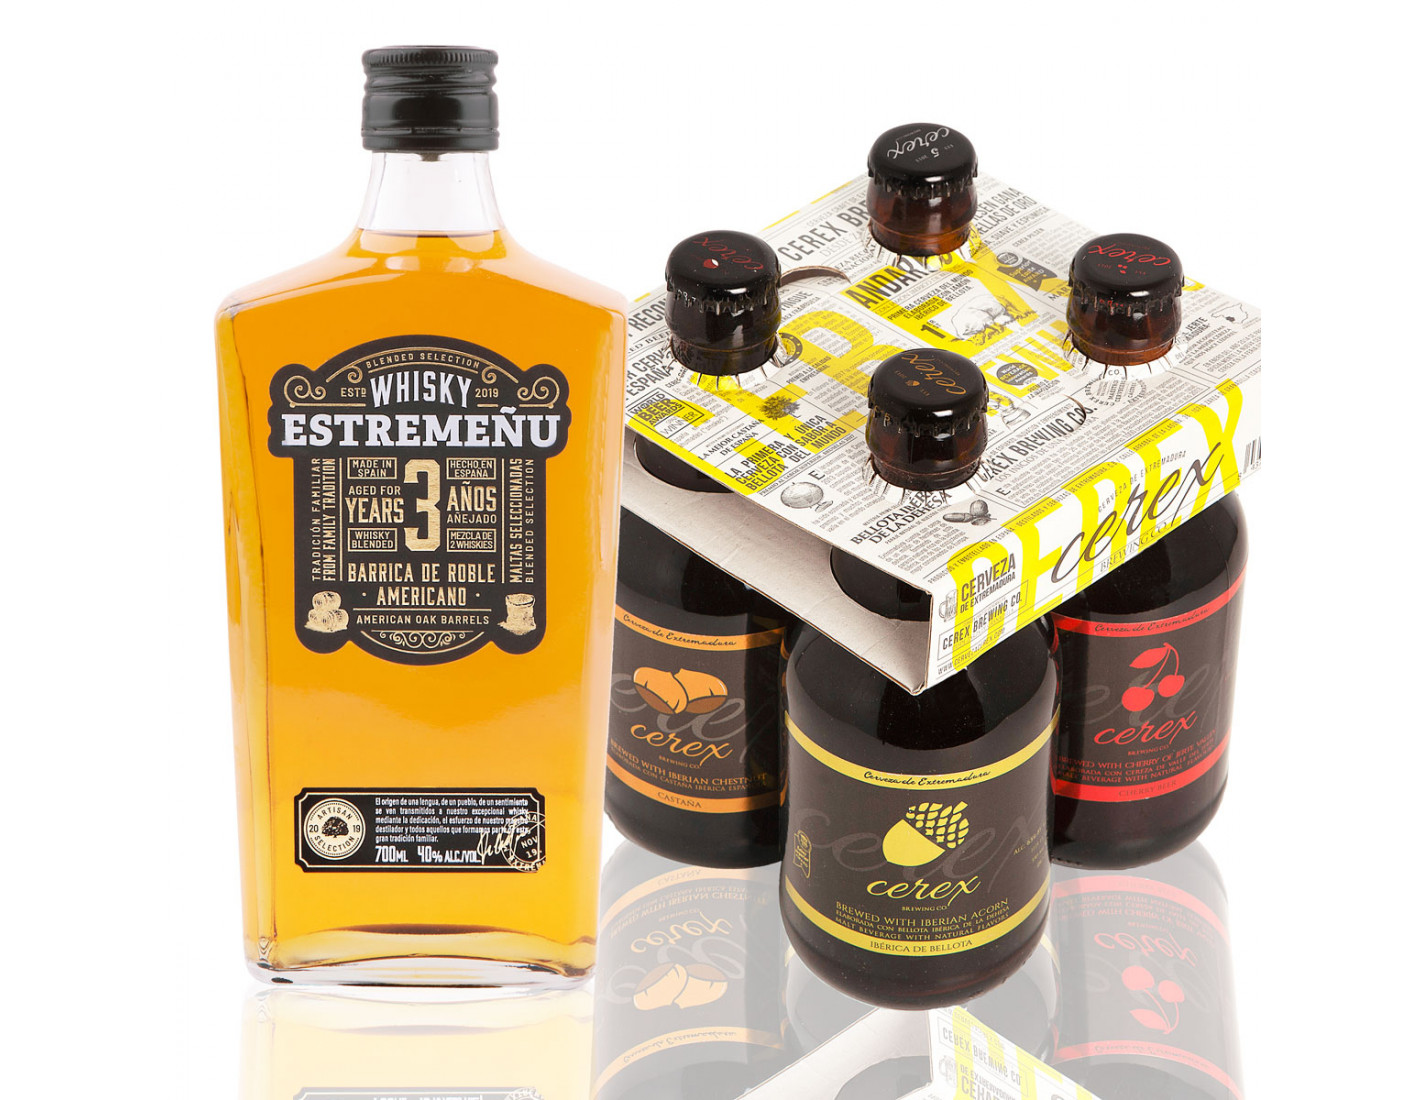 Pack 4 cervezas artesanales Cerex 33 cl + Whisky Estremeñu 700 ml